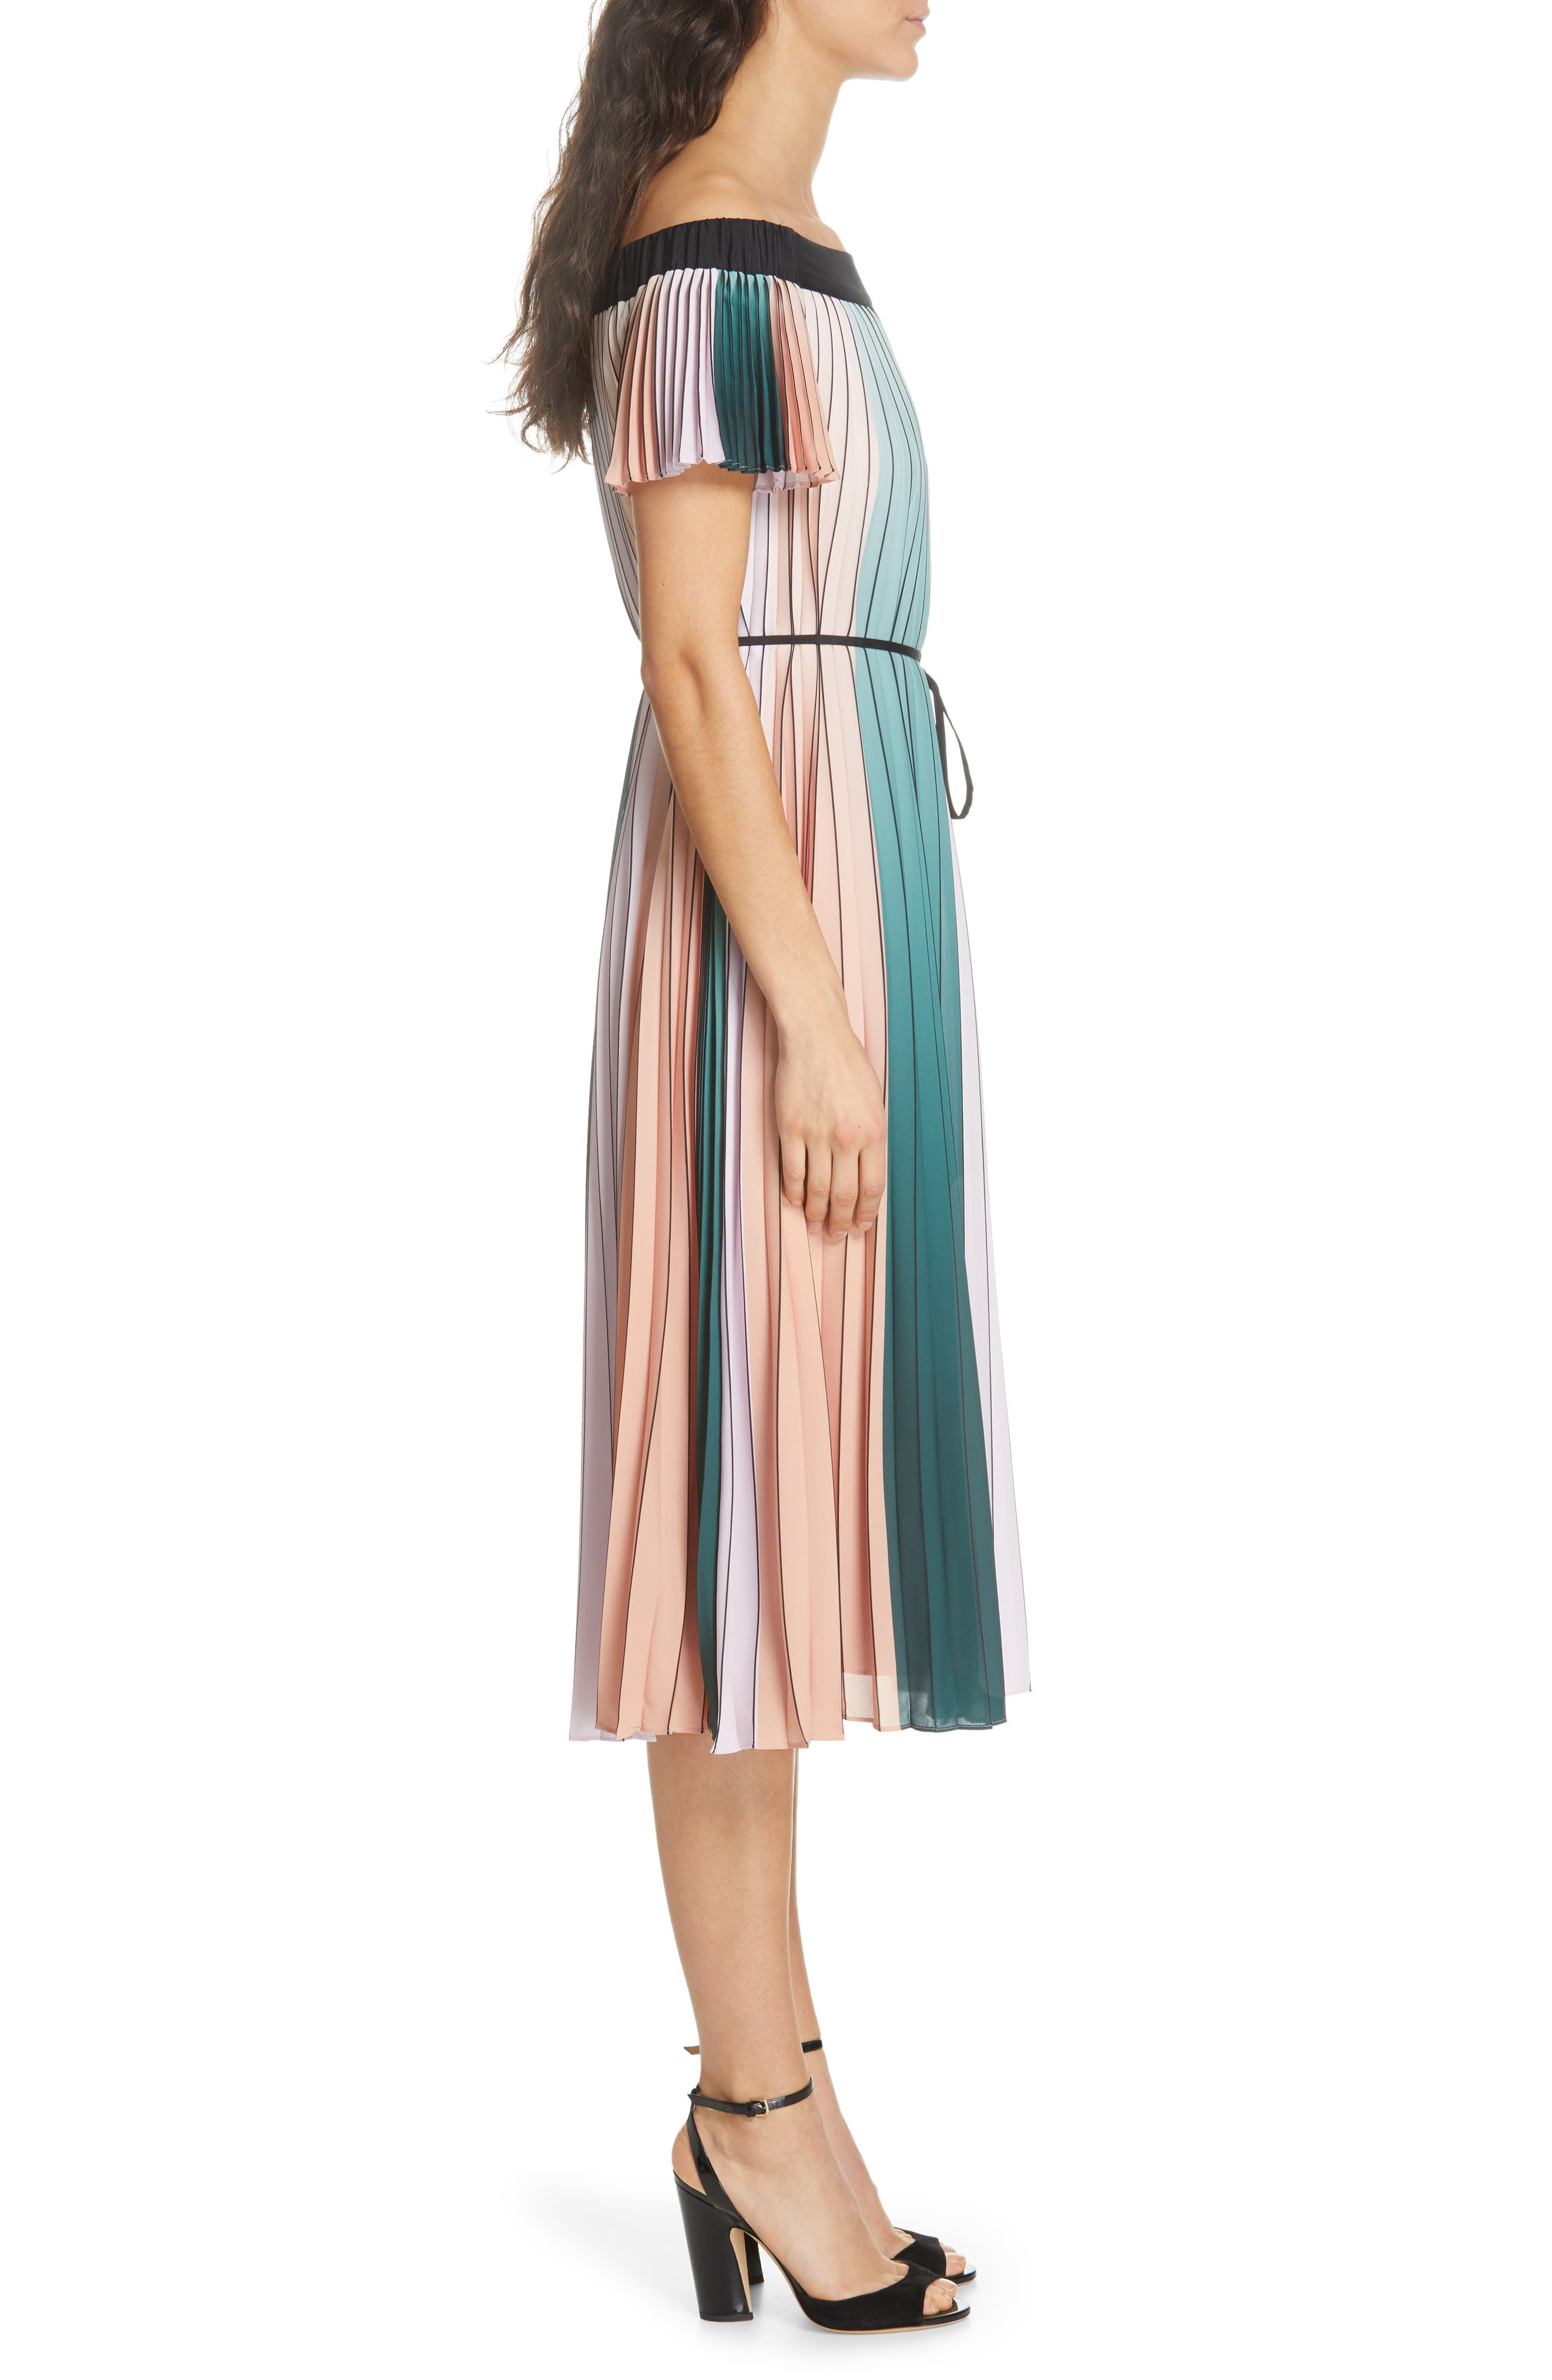 TED BAKER LONDON, Fernee Colorblock Pleated Dress, Alternate thumbnail 4, color, LILAC